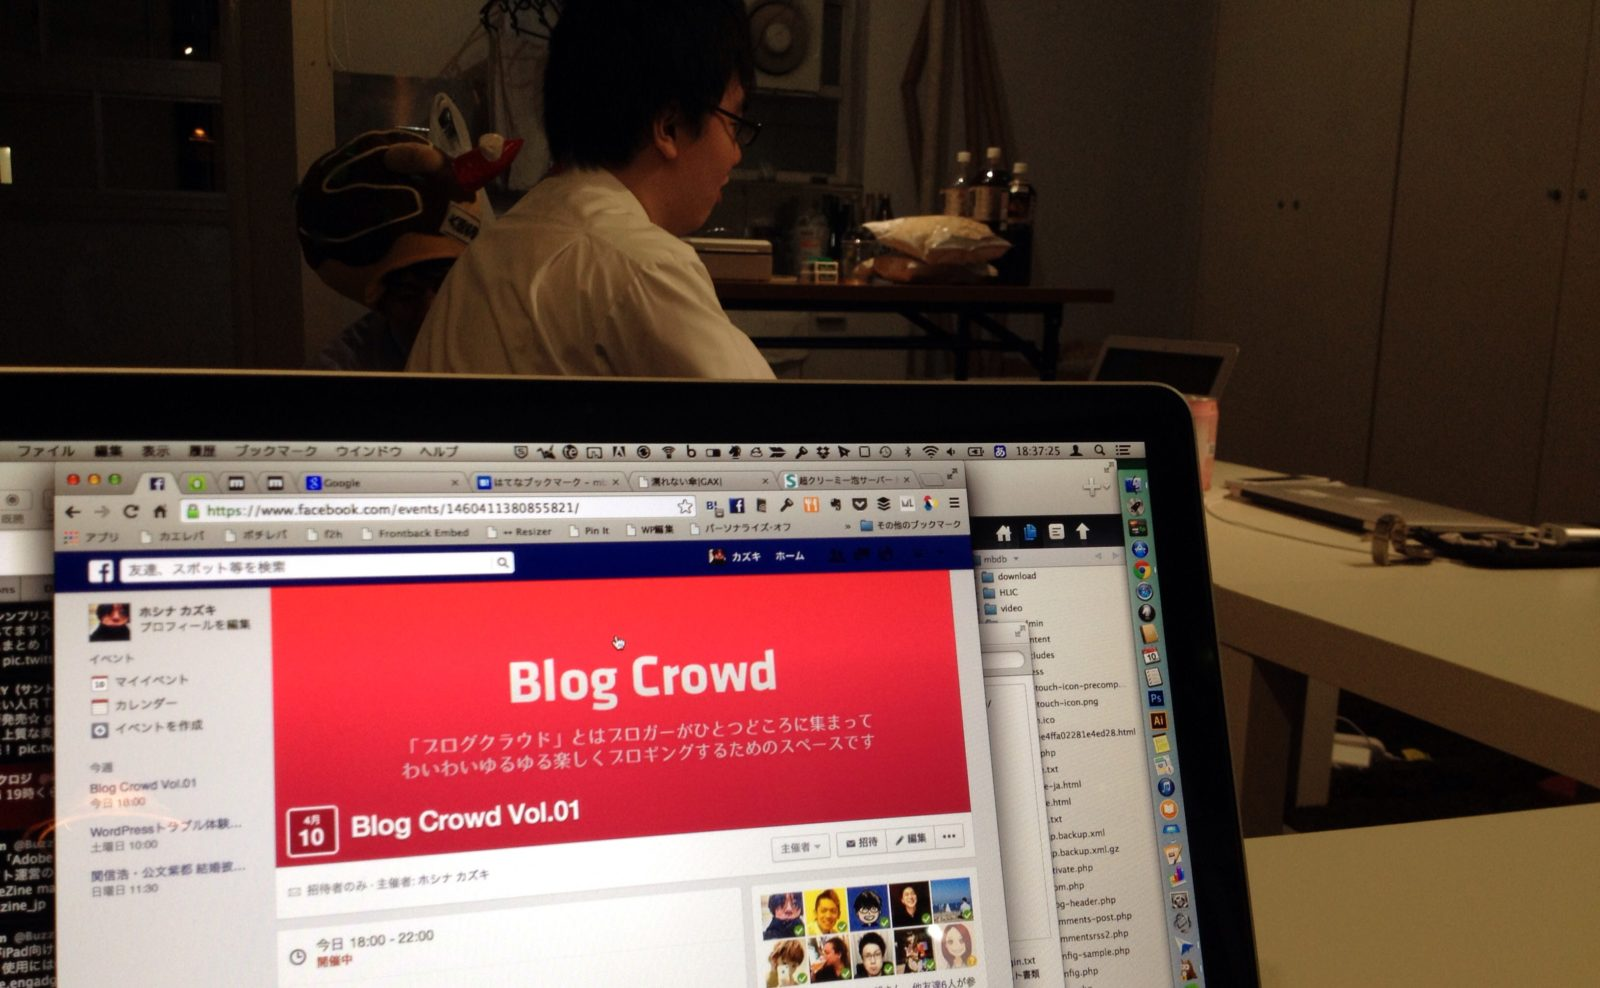 Blog Crowd Vol.01